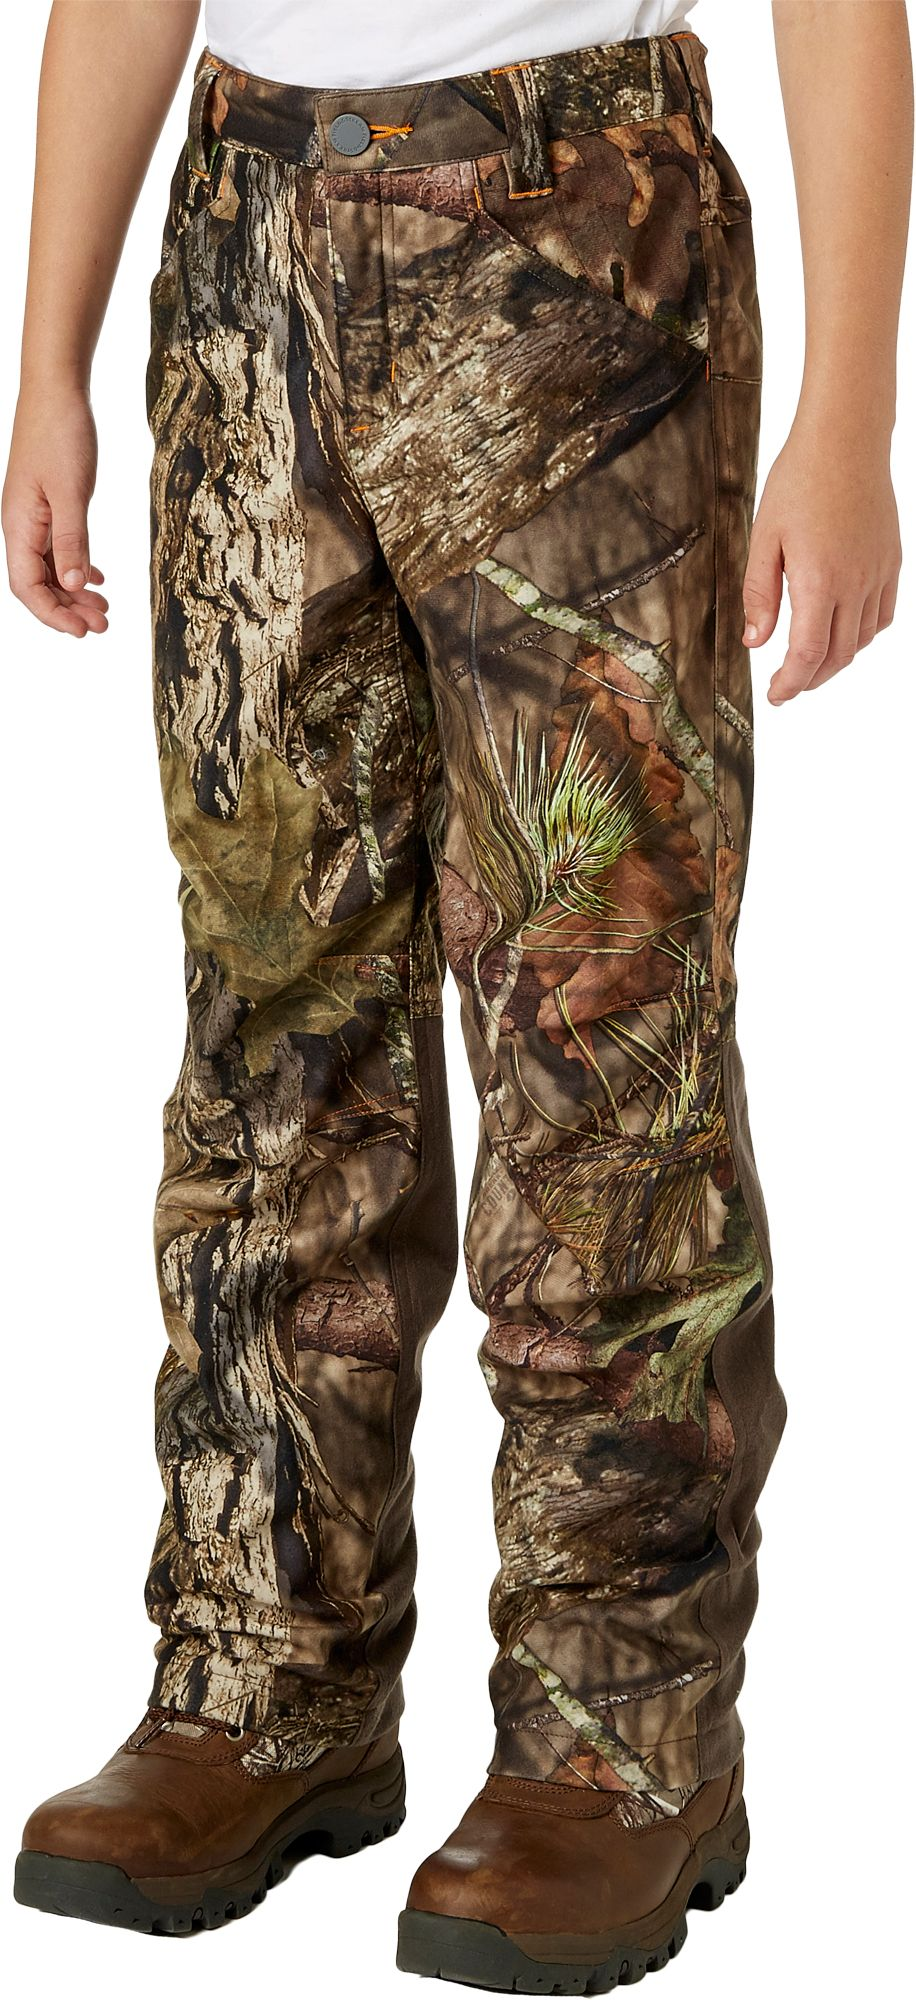 Field & Stream Youth Every Hunt Hunting Pants, Kids Unisex, Size: Medium, Mossy Oak Country thumbnail